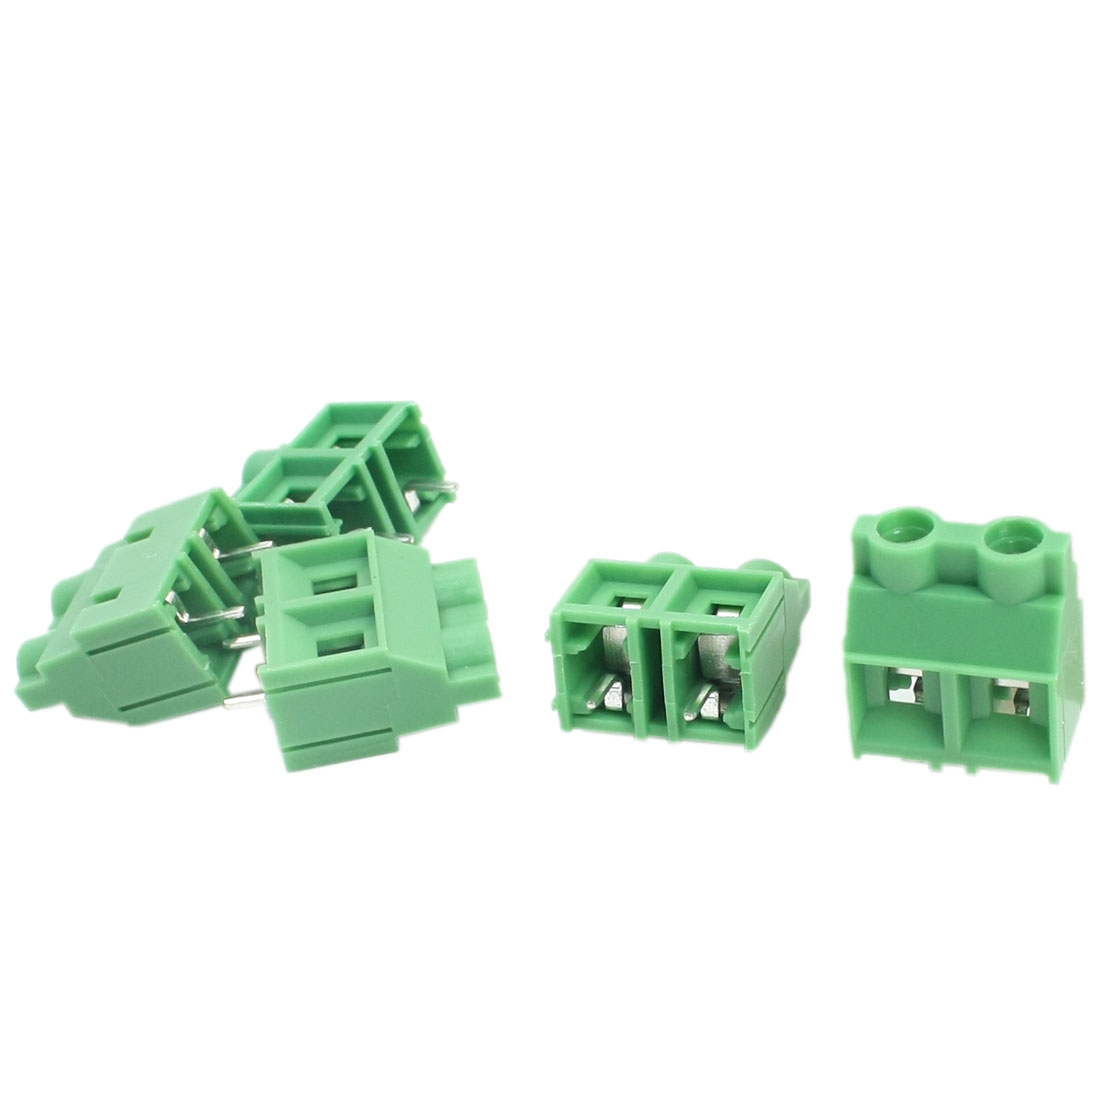 5Pcs 300V 30A 8.5mm Spacing 2P in Through Hole Mounting Green PCB Screw Terminal Barrier Block Connector